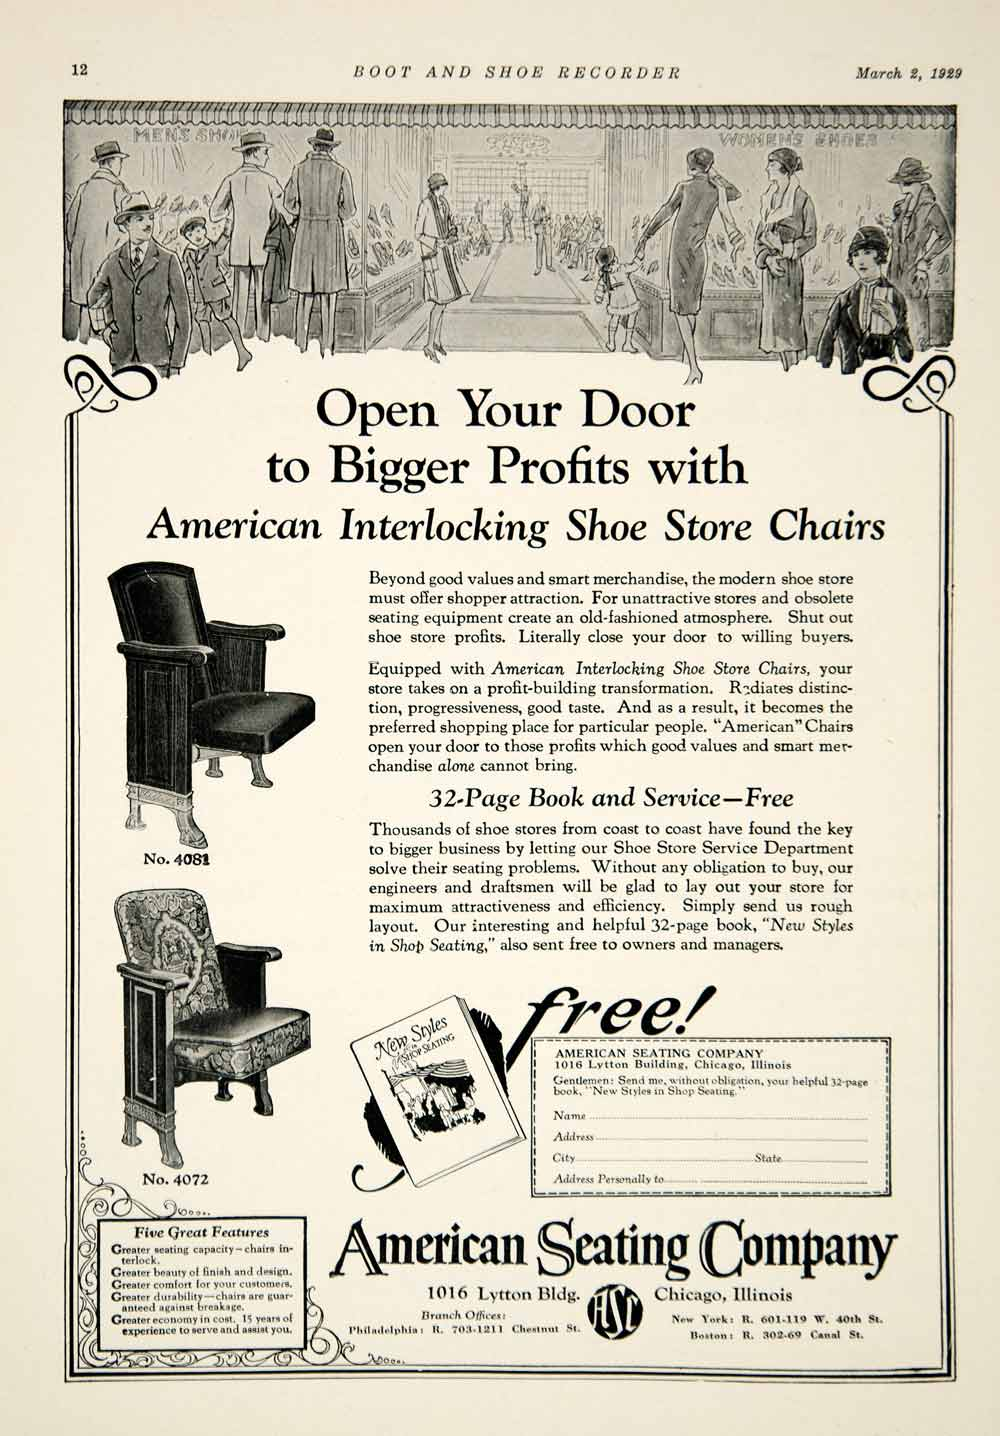 1929 Ad American Seating Company Shoe Store Chairs Furniture Department YBSR1